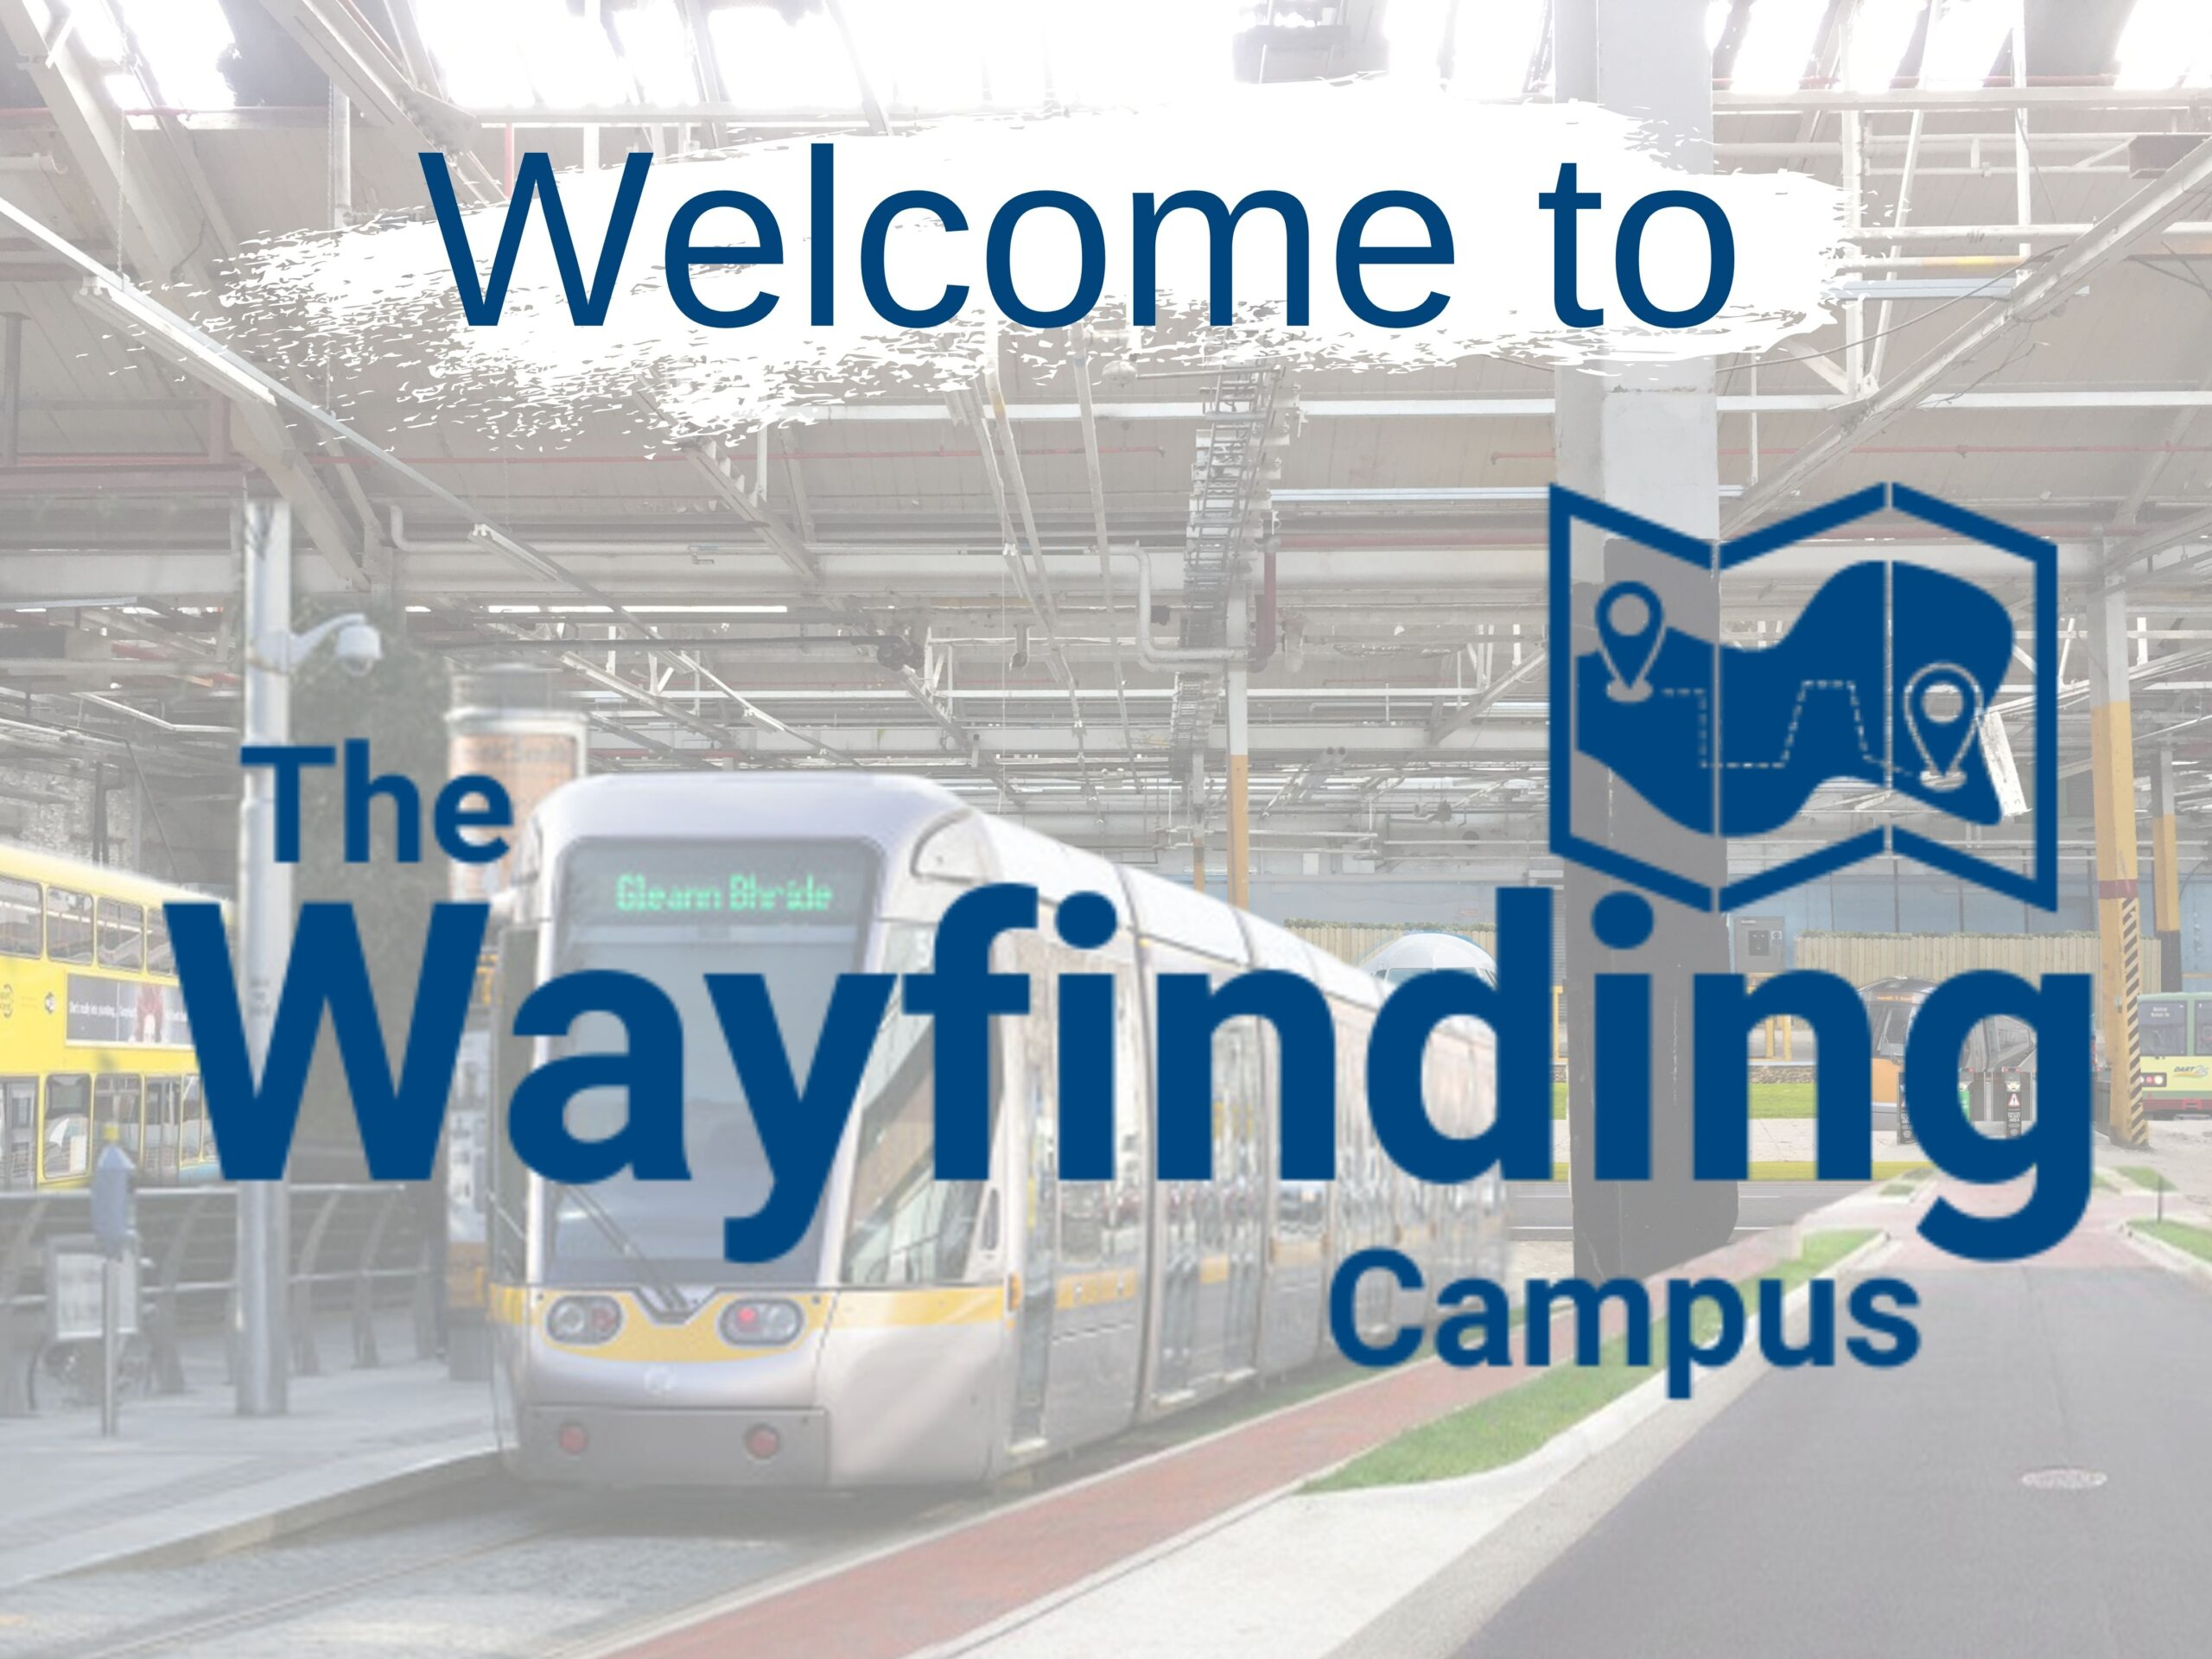 Welcome to the Wayfinding campus inside image of proposed Wayfinding Campus